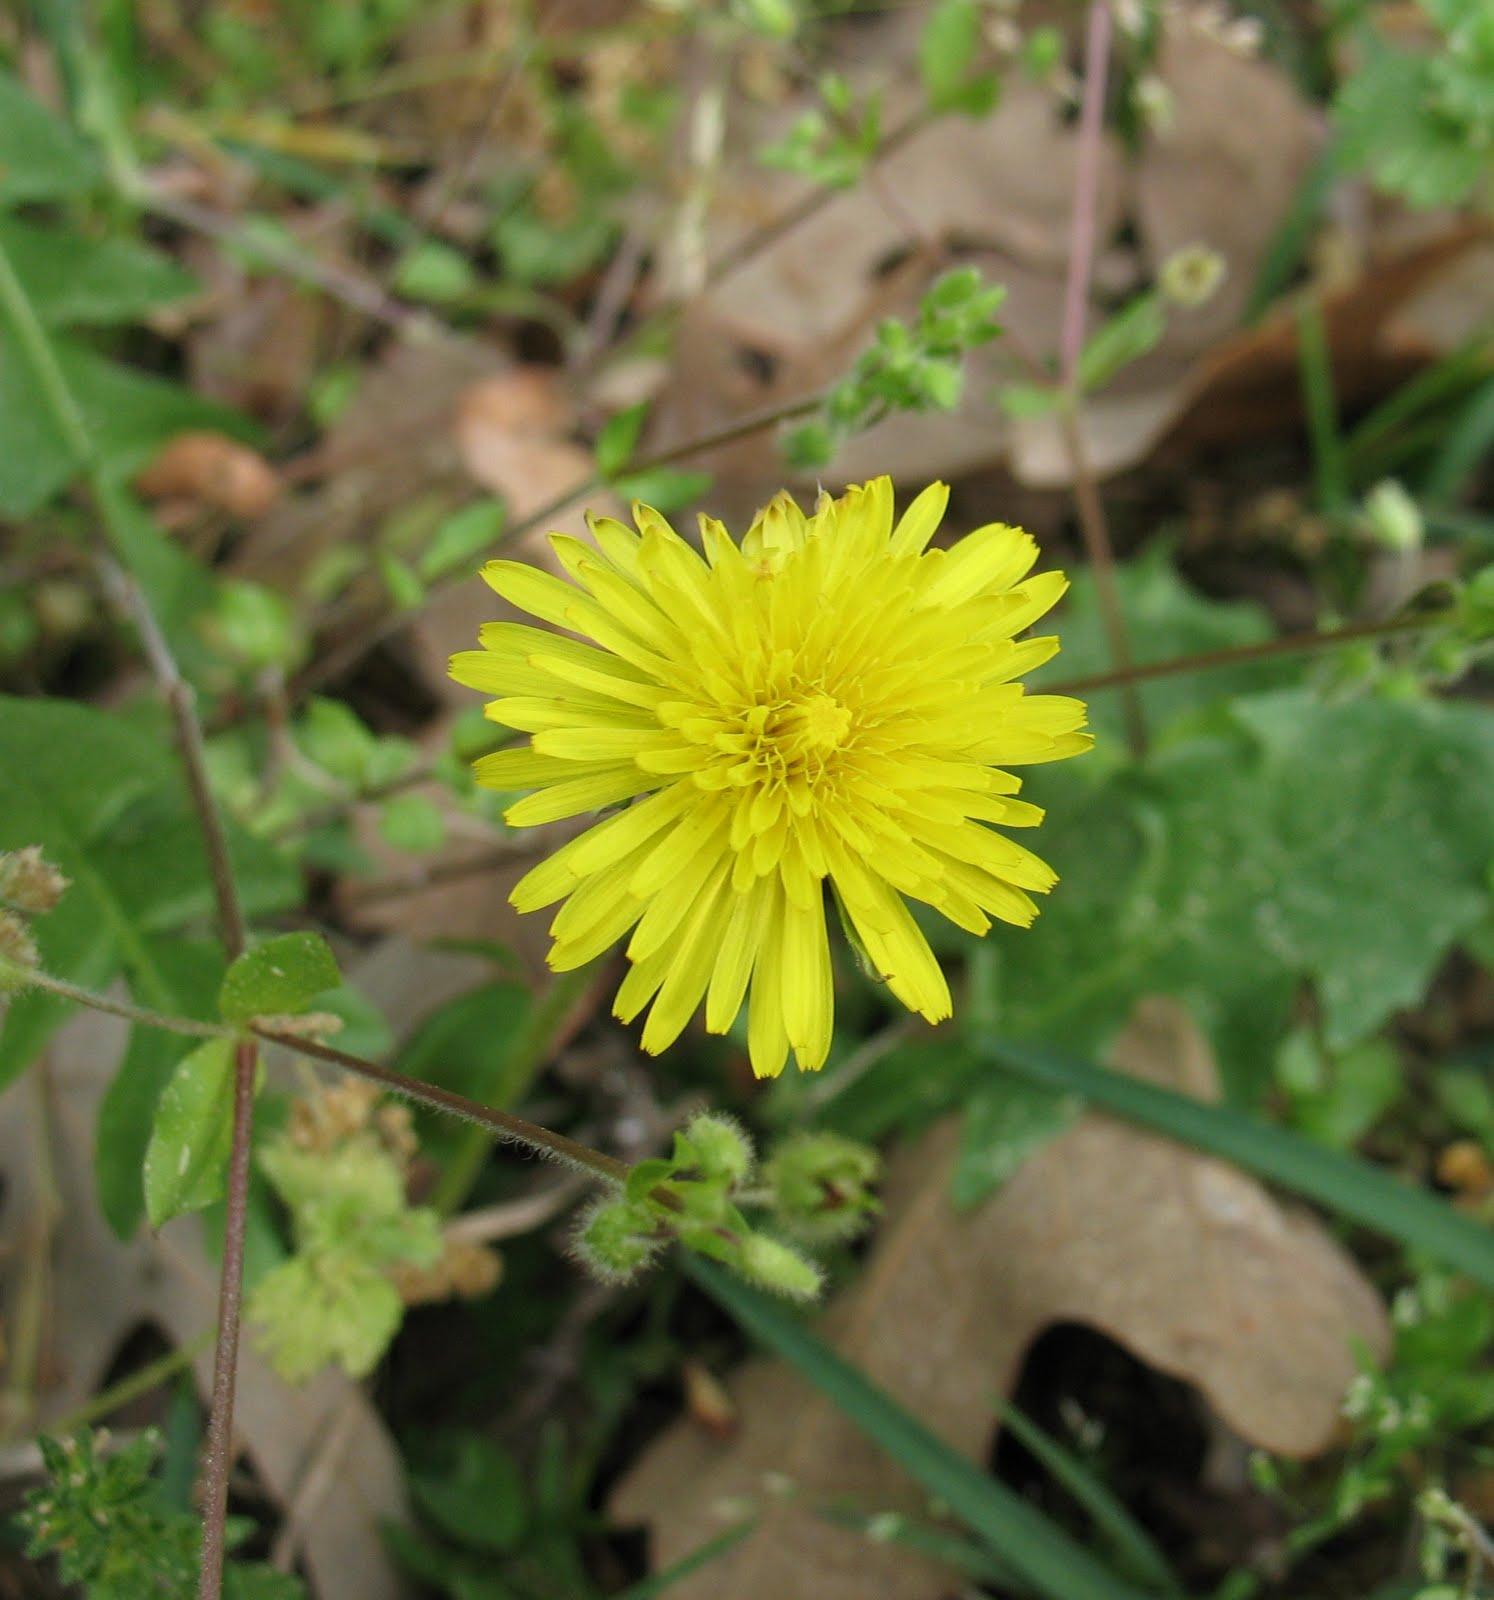 Edible Wild Plants – Dandelion Greens